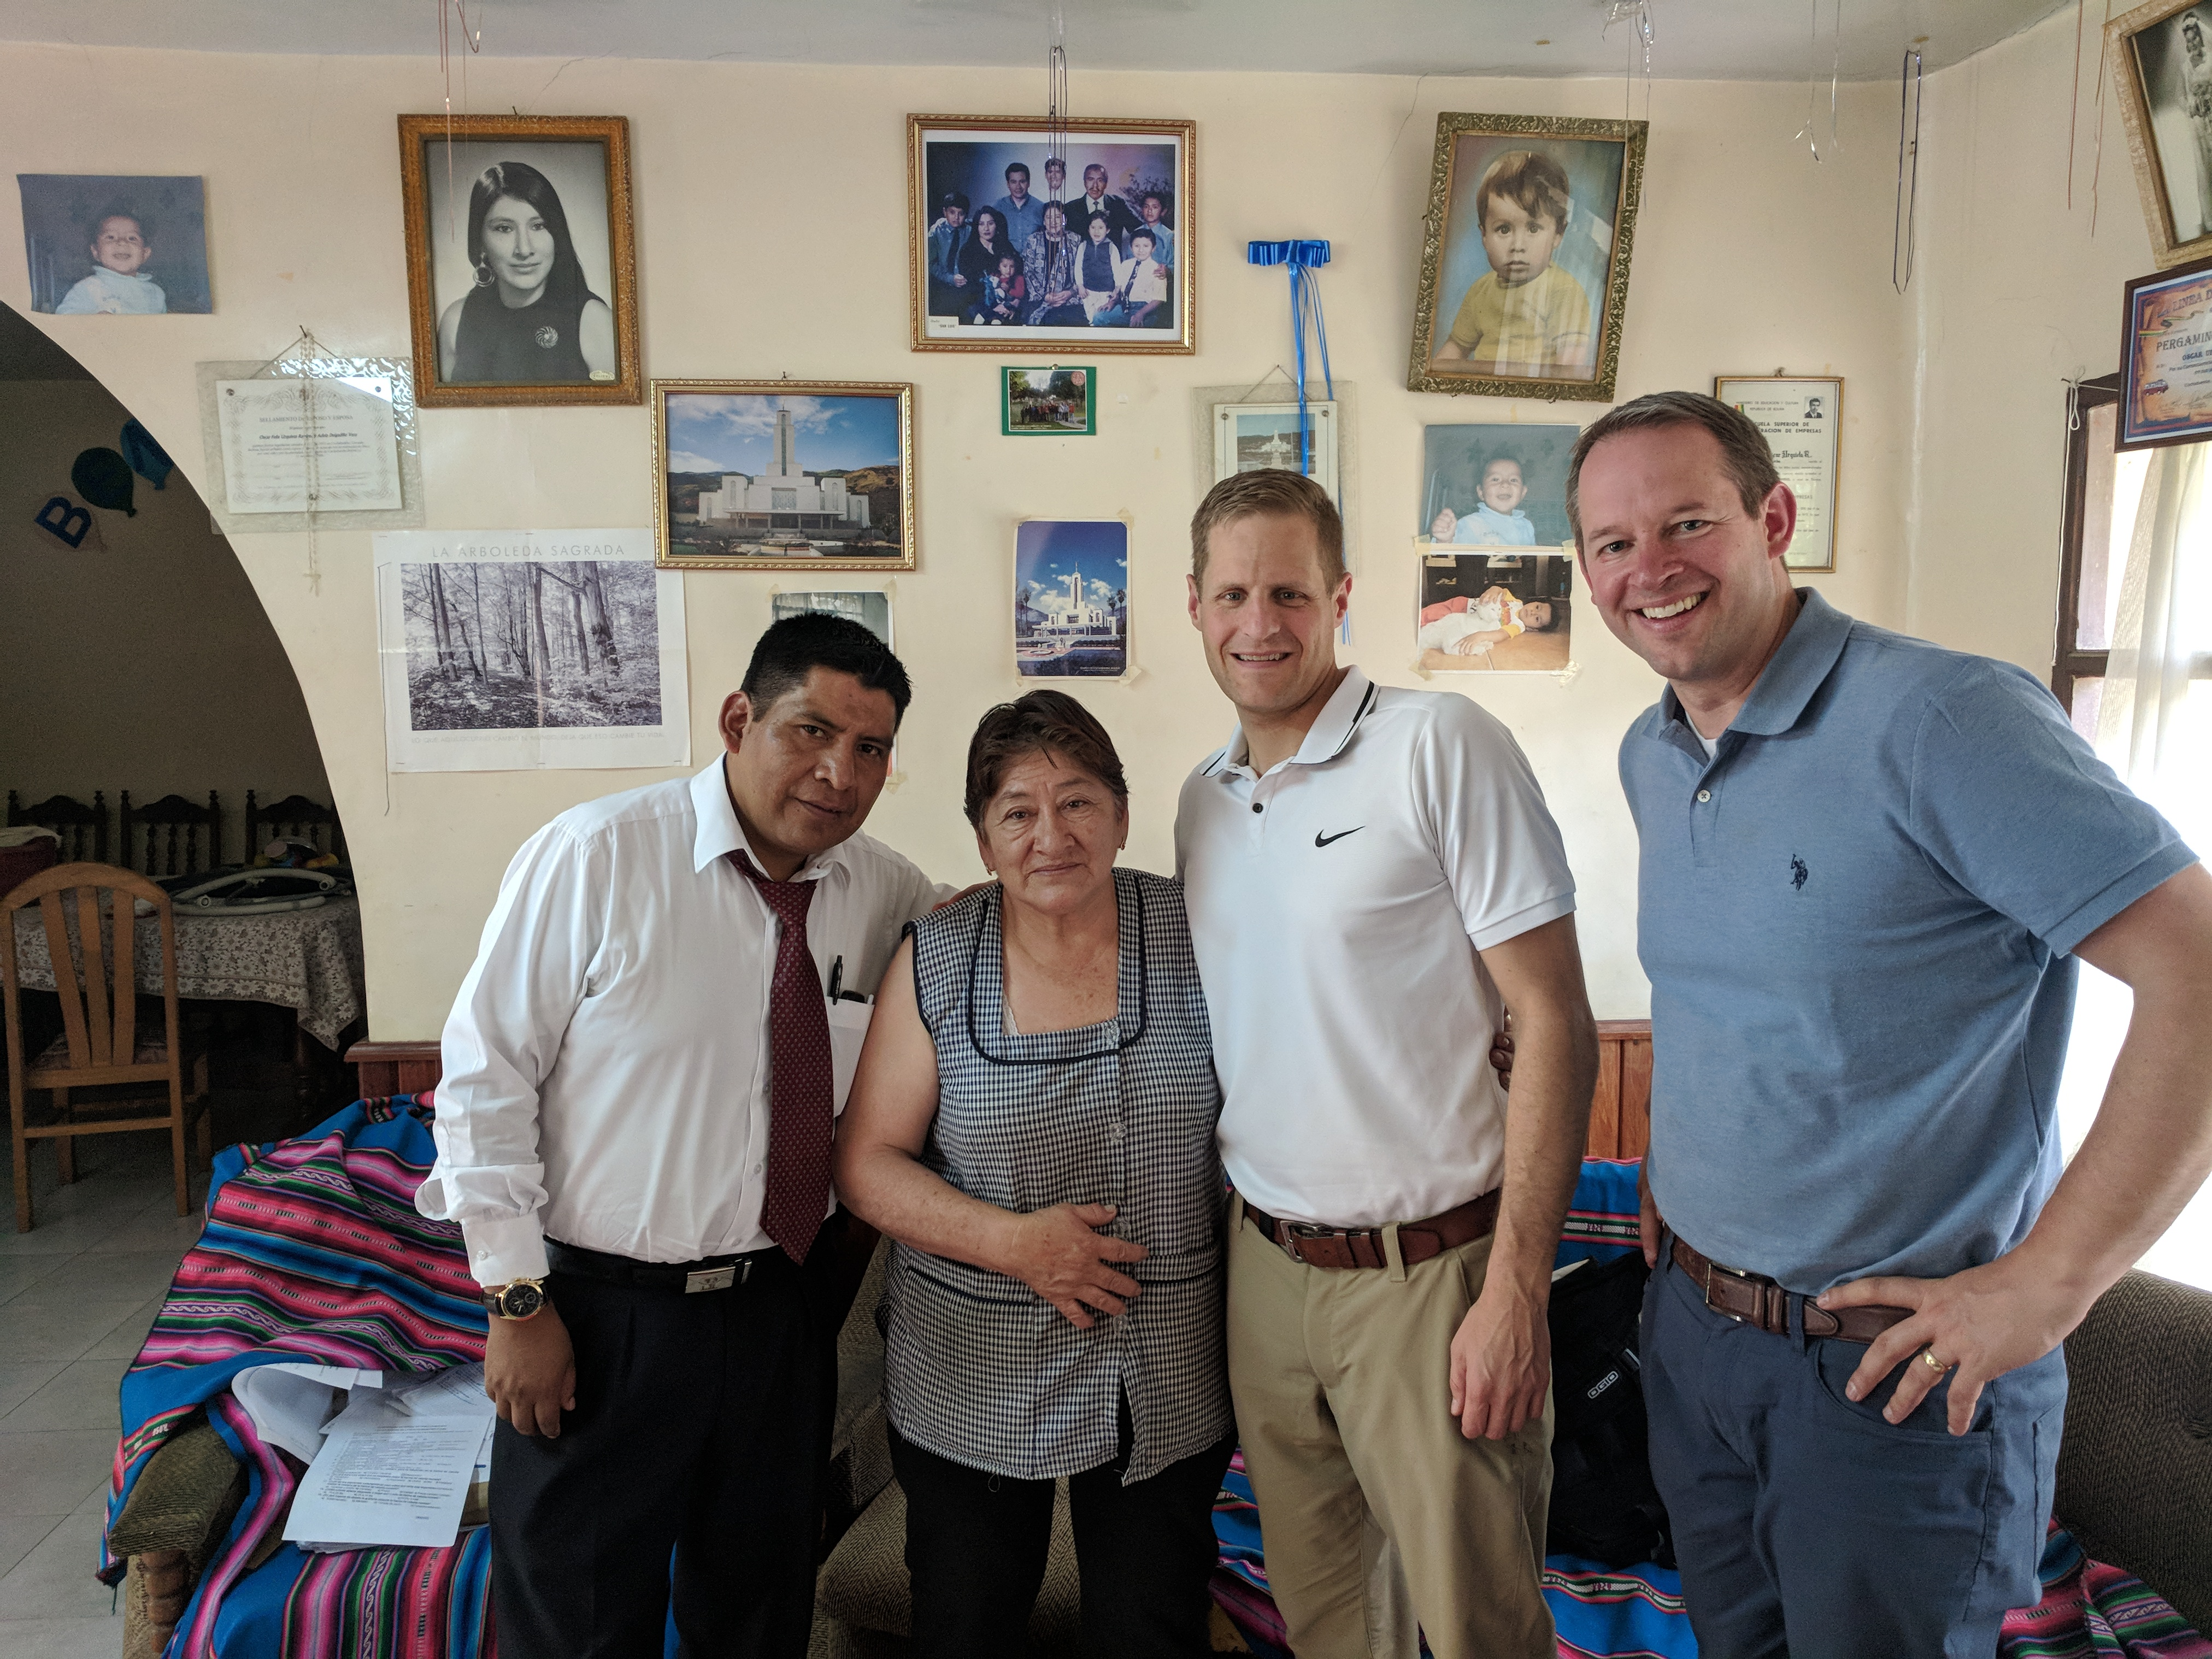 From left to right: Johnny Choque, Adela Urquieta, David McConkie, and Kevin Burke. McConkie and Burke taught Sister Urquieta 20 years ago and reunited with her when they returned to visit in October.